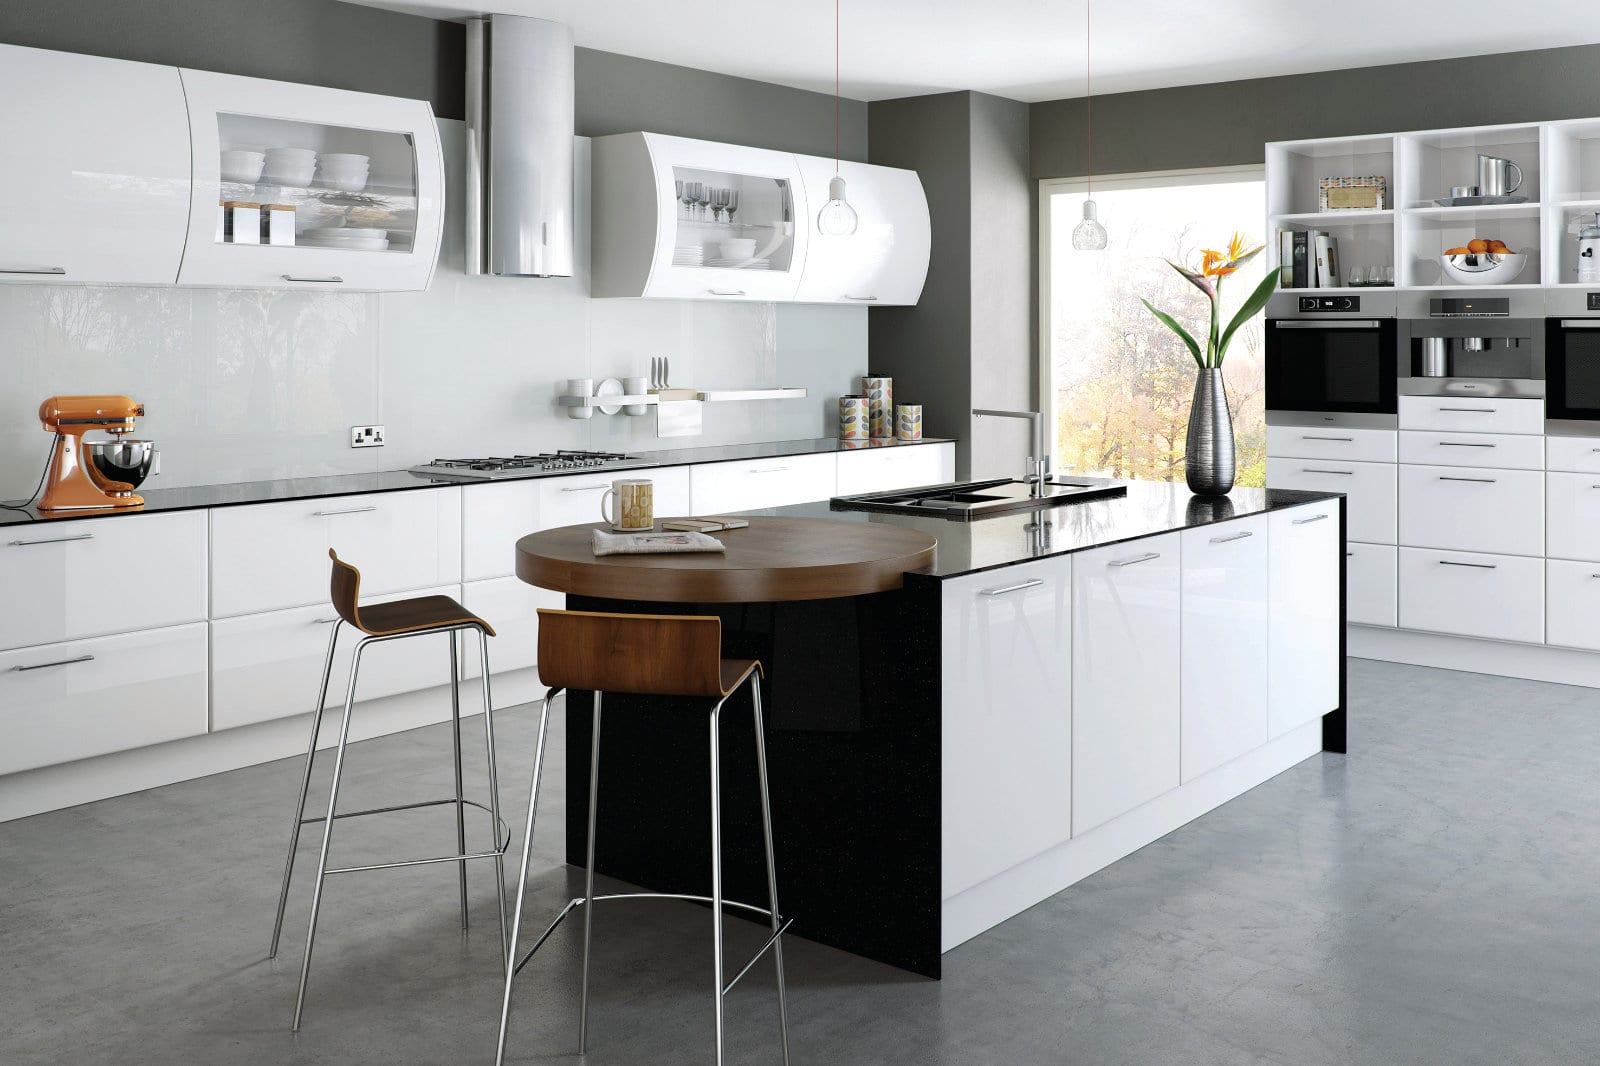 Blossom Avenue High Gloss White Lincoln Kitchen With Island | Right Choice Kitchens, South Wales